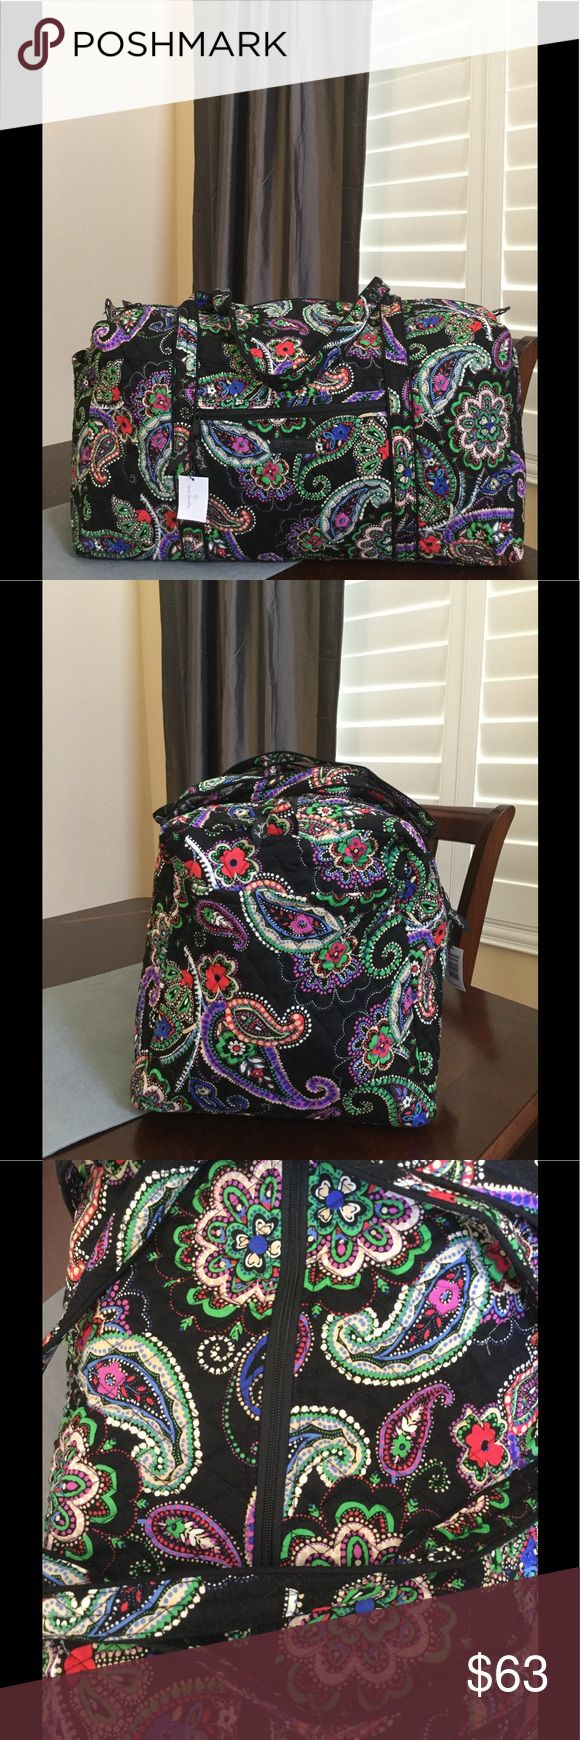 """NWT VERA BRADLEY LARGE DUFFEL Brand new with tags Vera Bradley large duffel  Kiev paisley pattern  15"""" strap drop Handy outside end pocket Folds flat for easy storing Dimensions 22"""" W x 11½"""" H x 11½"""" D - 15"""" strap drop Duffle Smoke/pet free home Vera Bradley Bags Travel Bags"""